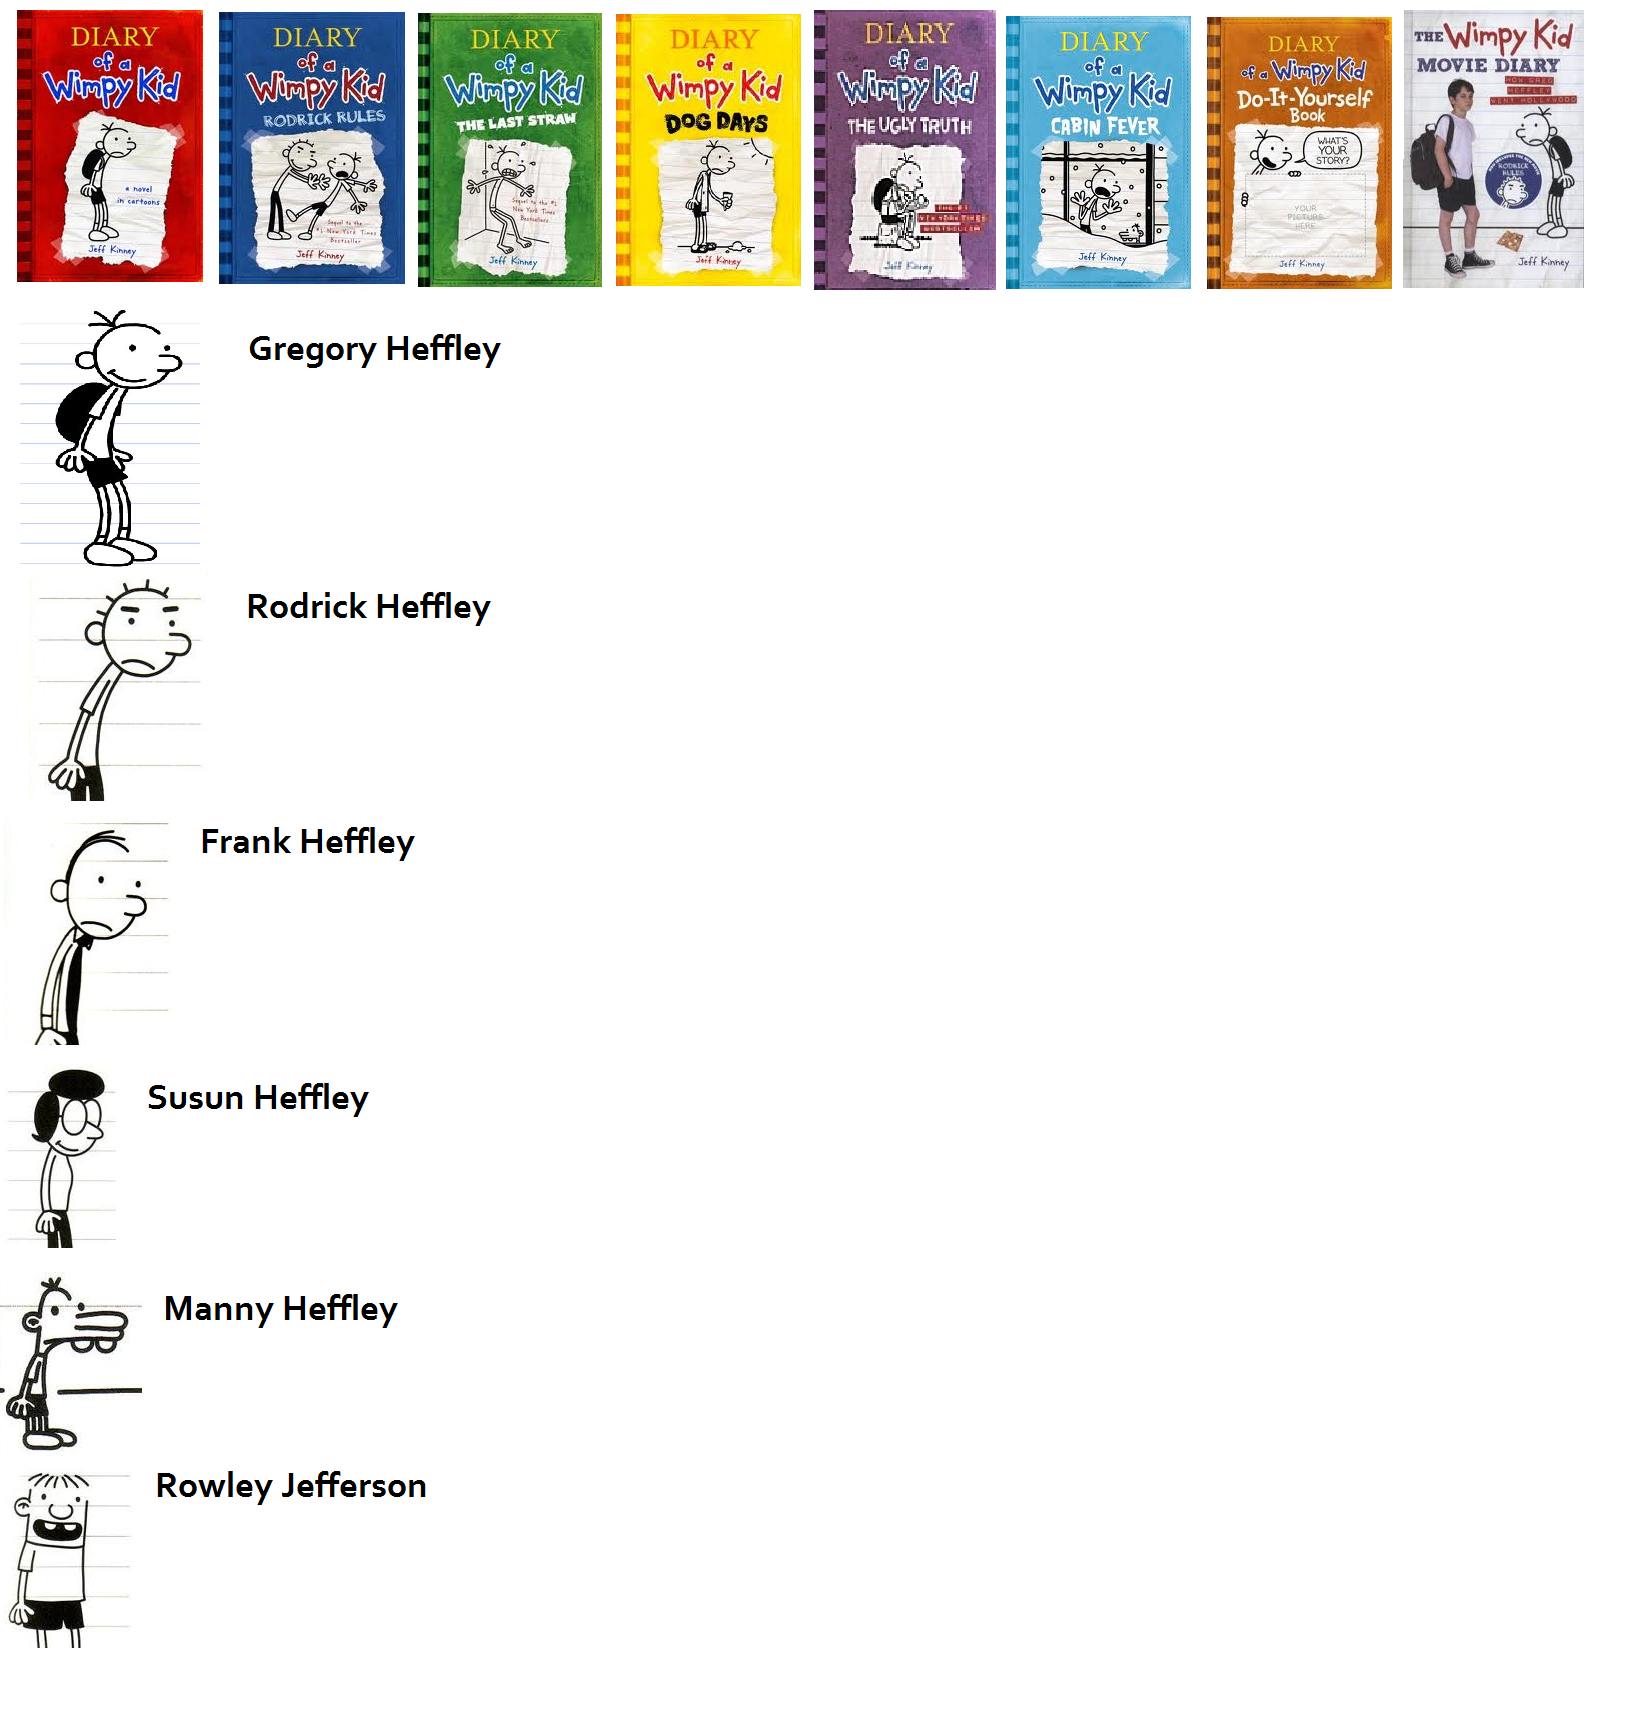 All Books Diary Of A Wimpy Kid Photo 30368025 Fanpop Page 8